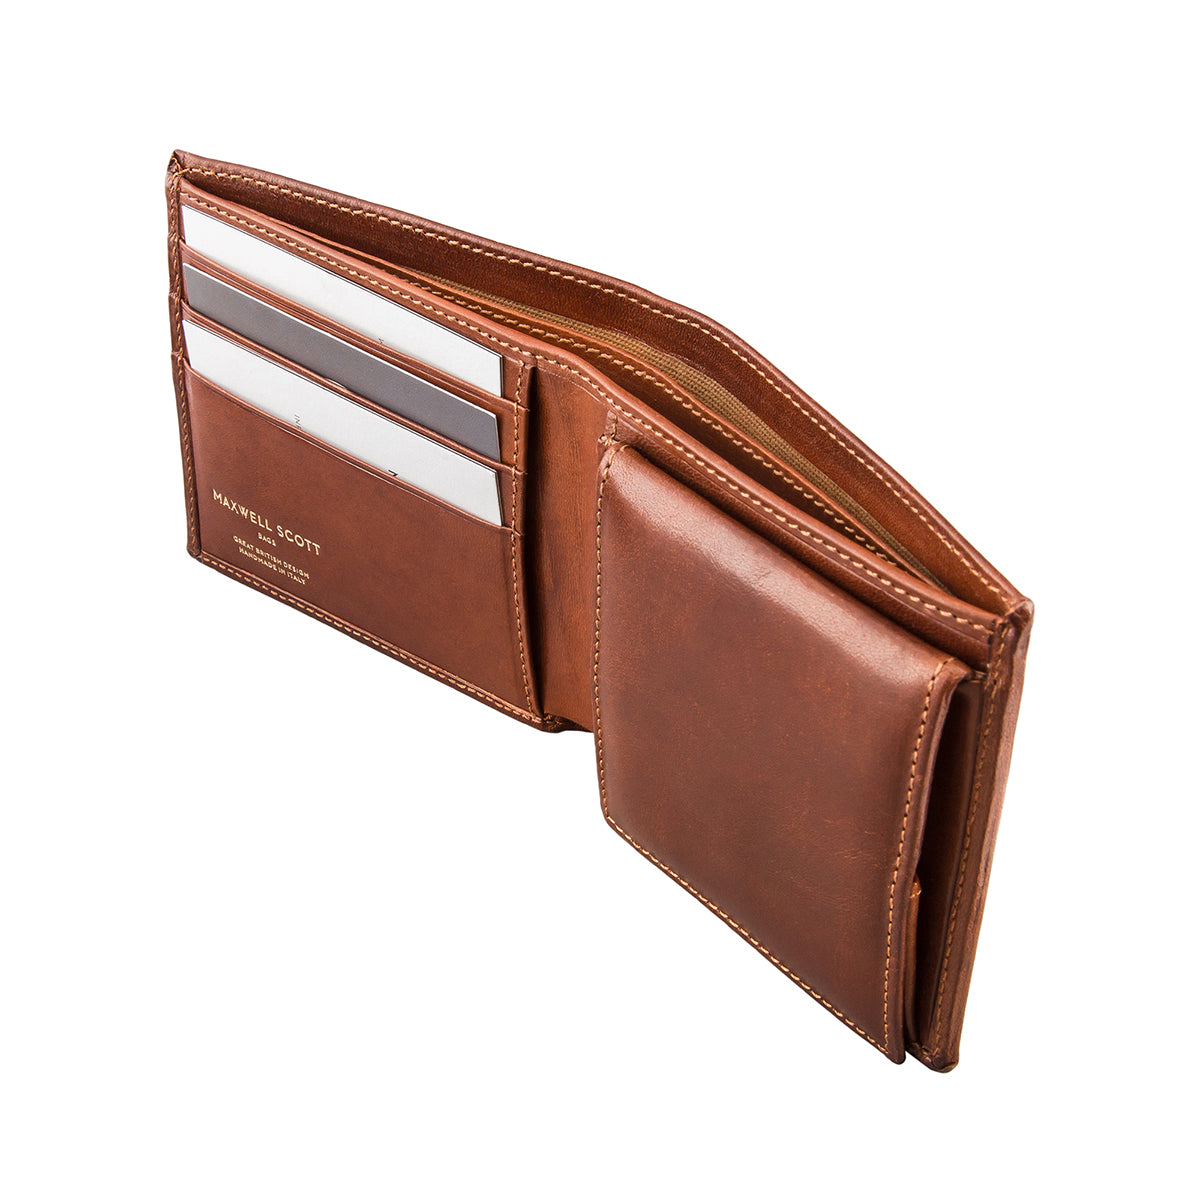 Image 4 of the 'Ticciano' Chestnut Veg-Tanned Leather Wallet with Coin Pocket